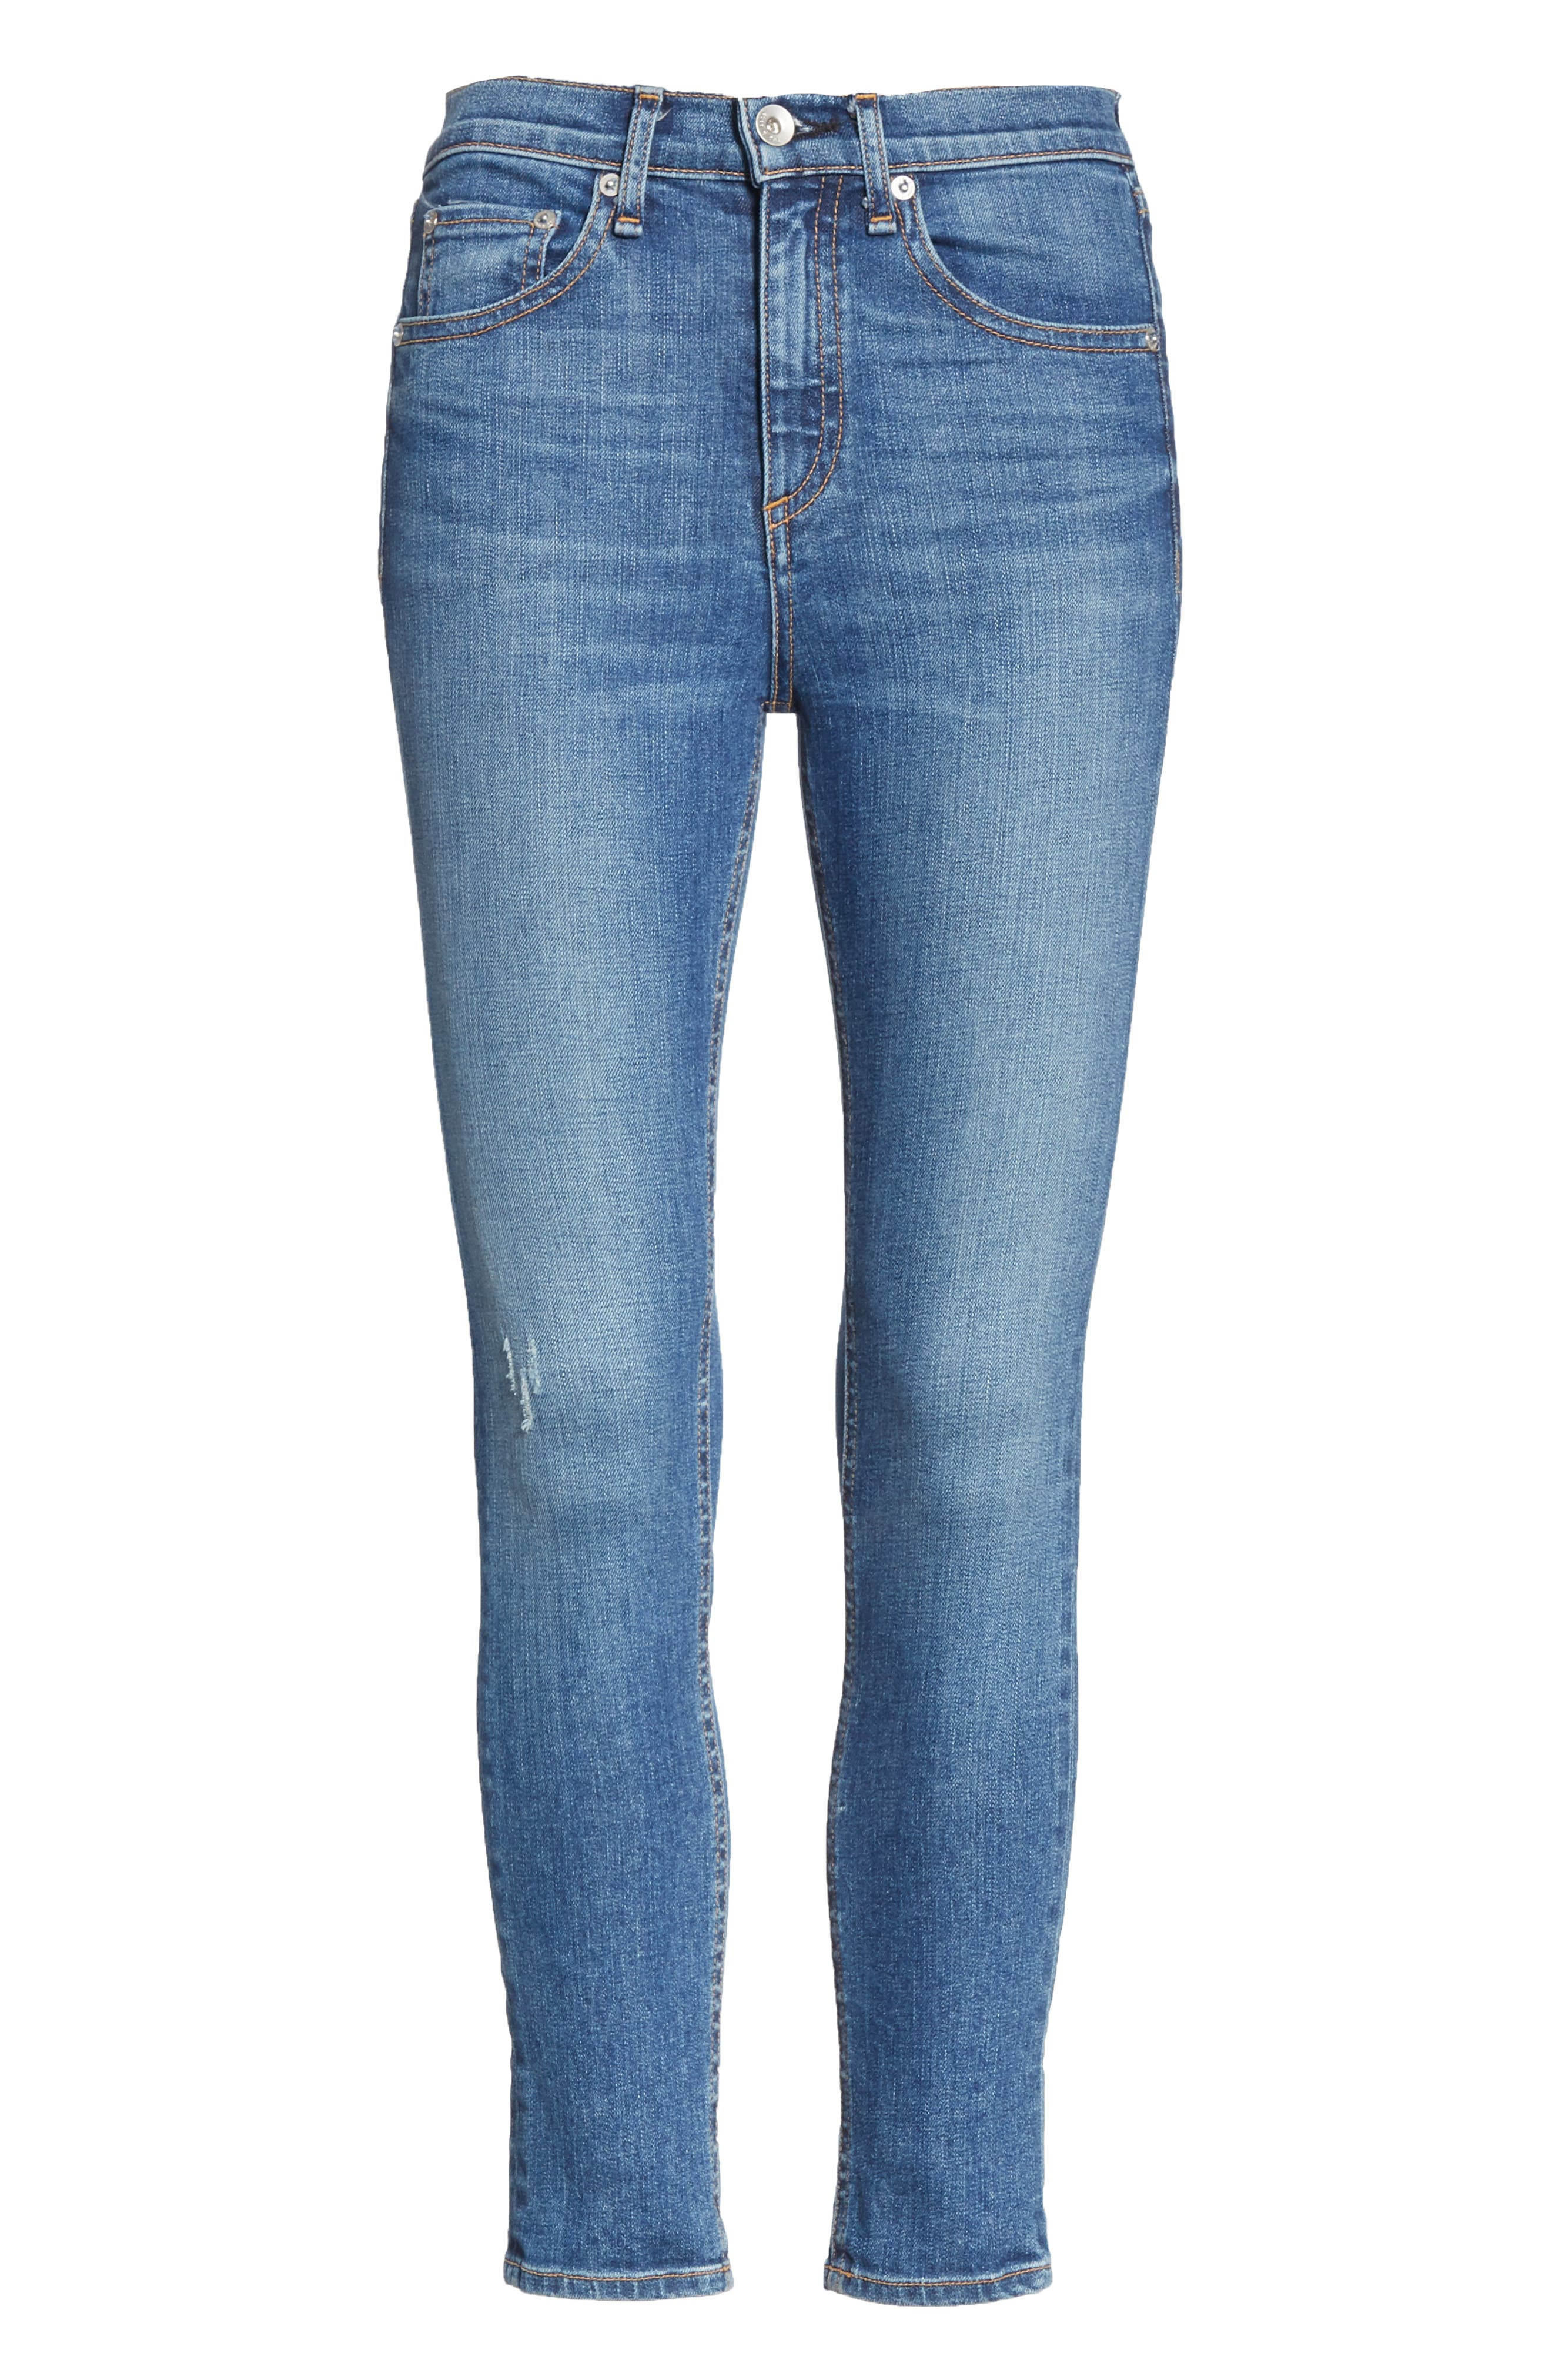 High Waist Ankle Skinny Jeans,                             Alternate thumbnail 7, color,                             EL